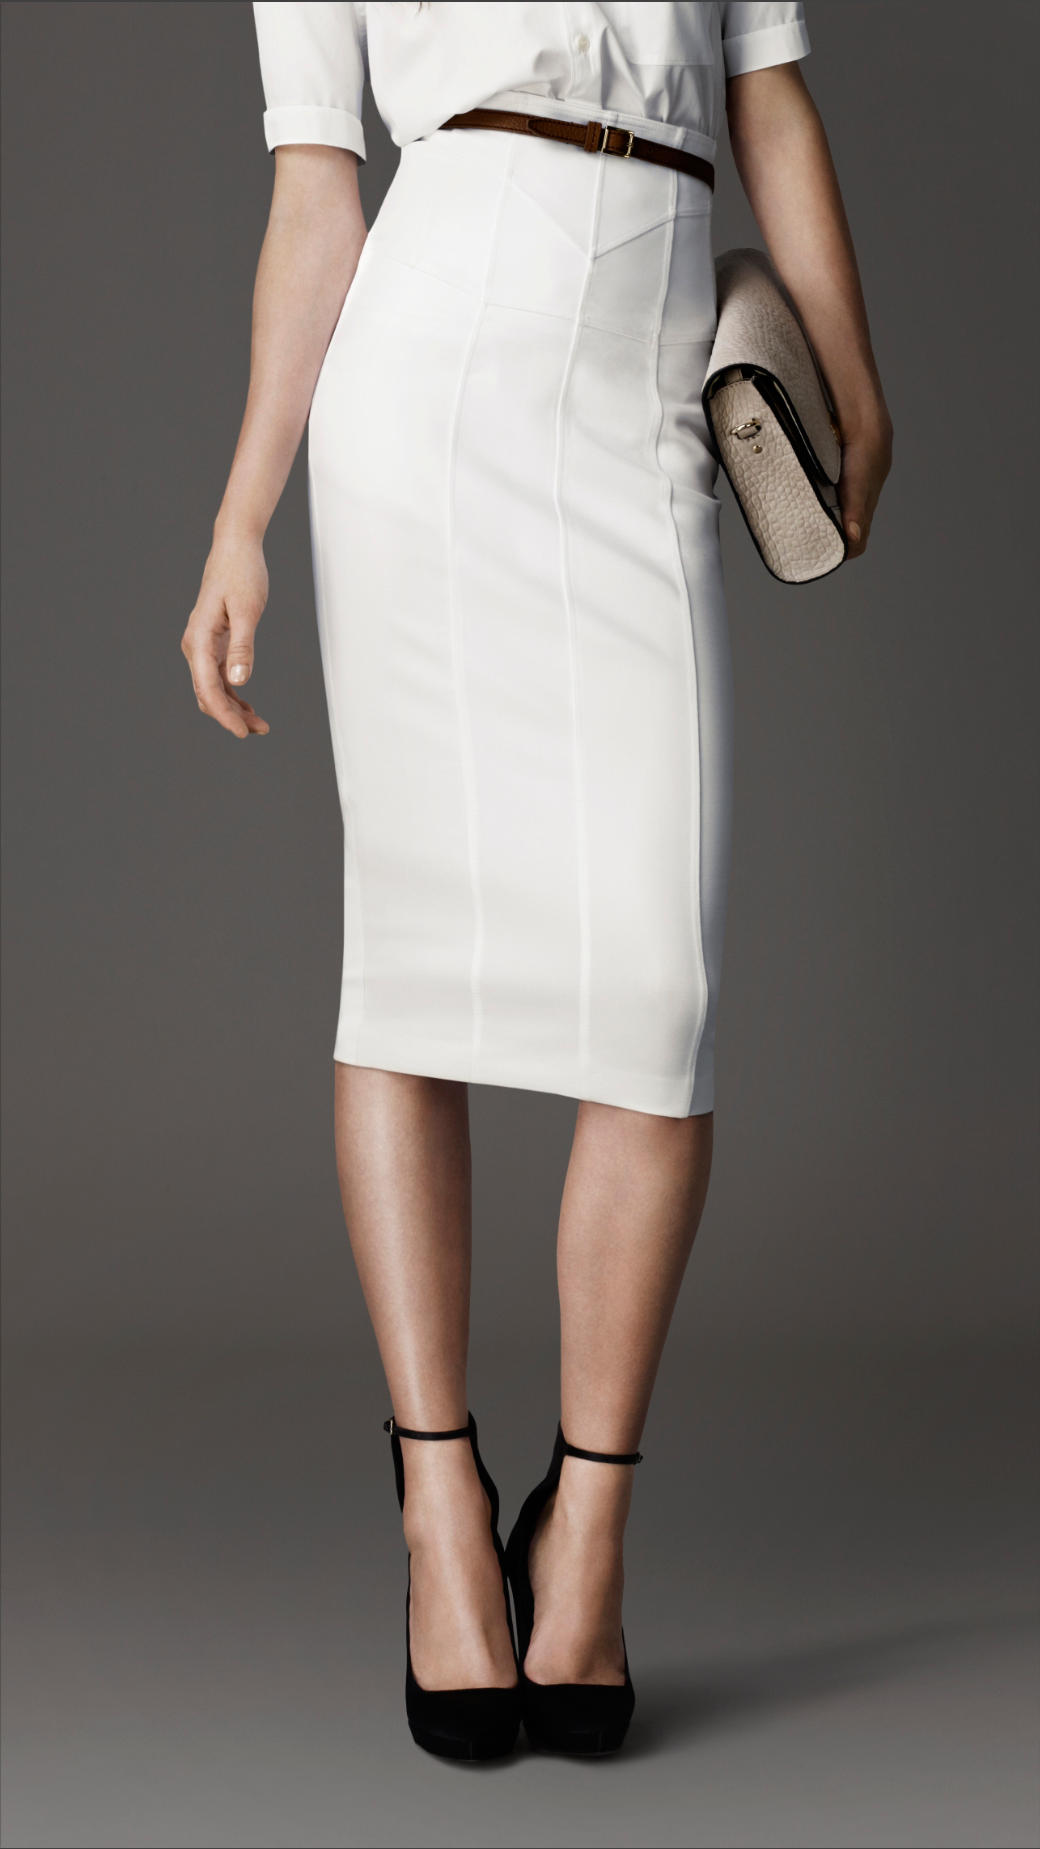 Burberry Corsetjersey Pencil Skirt in White | Lyst